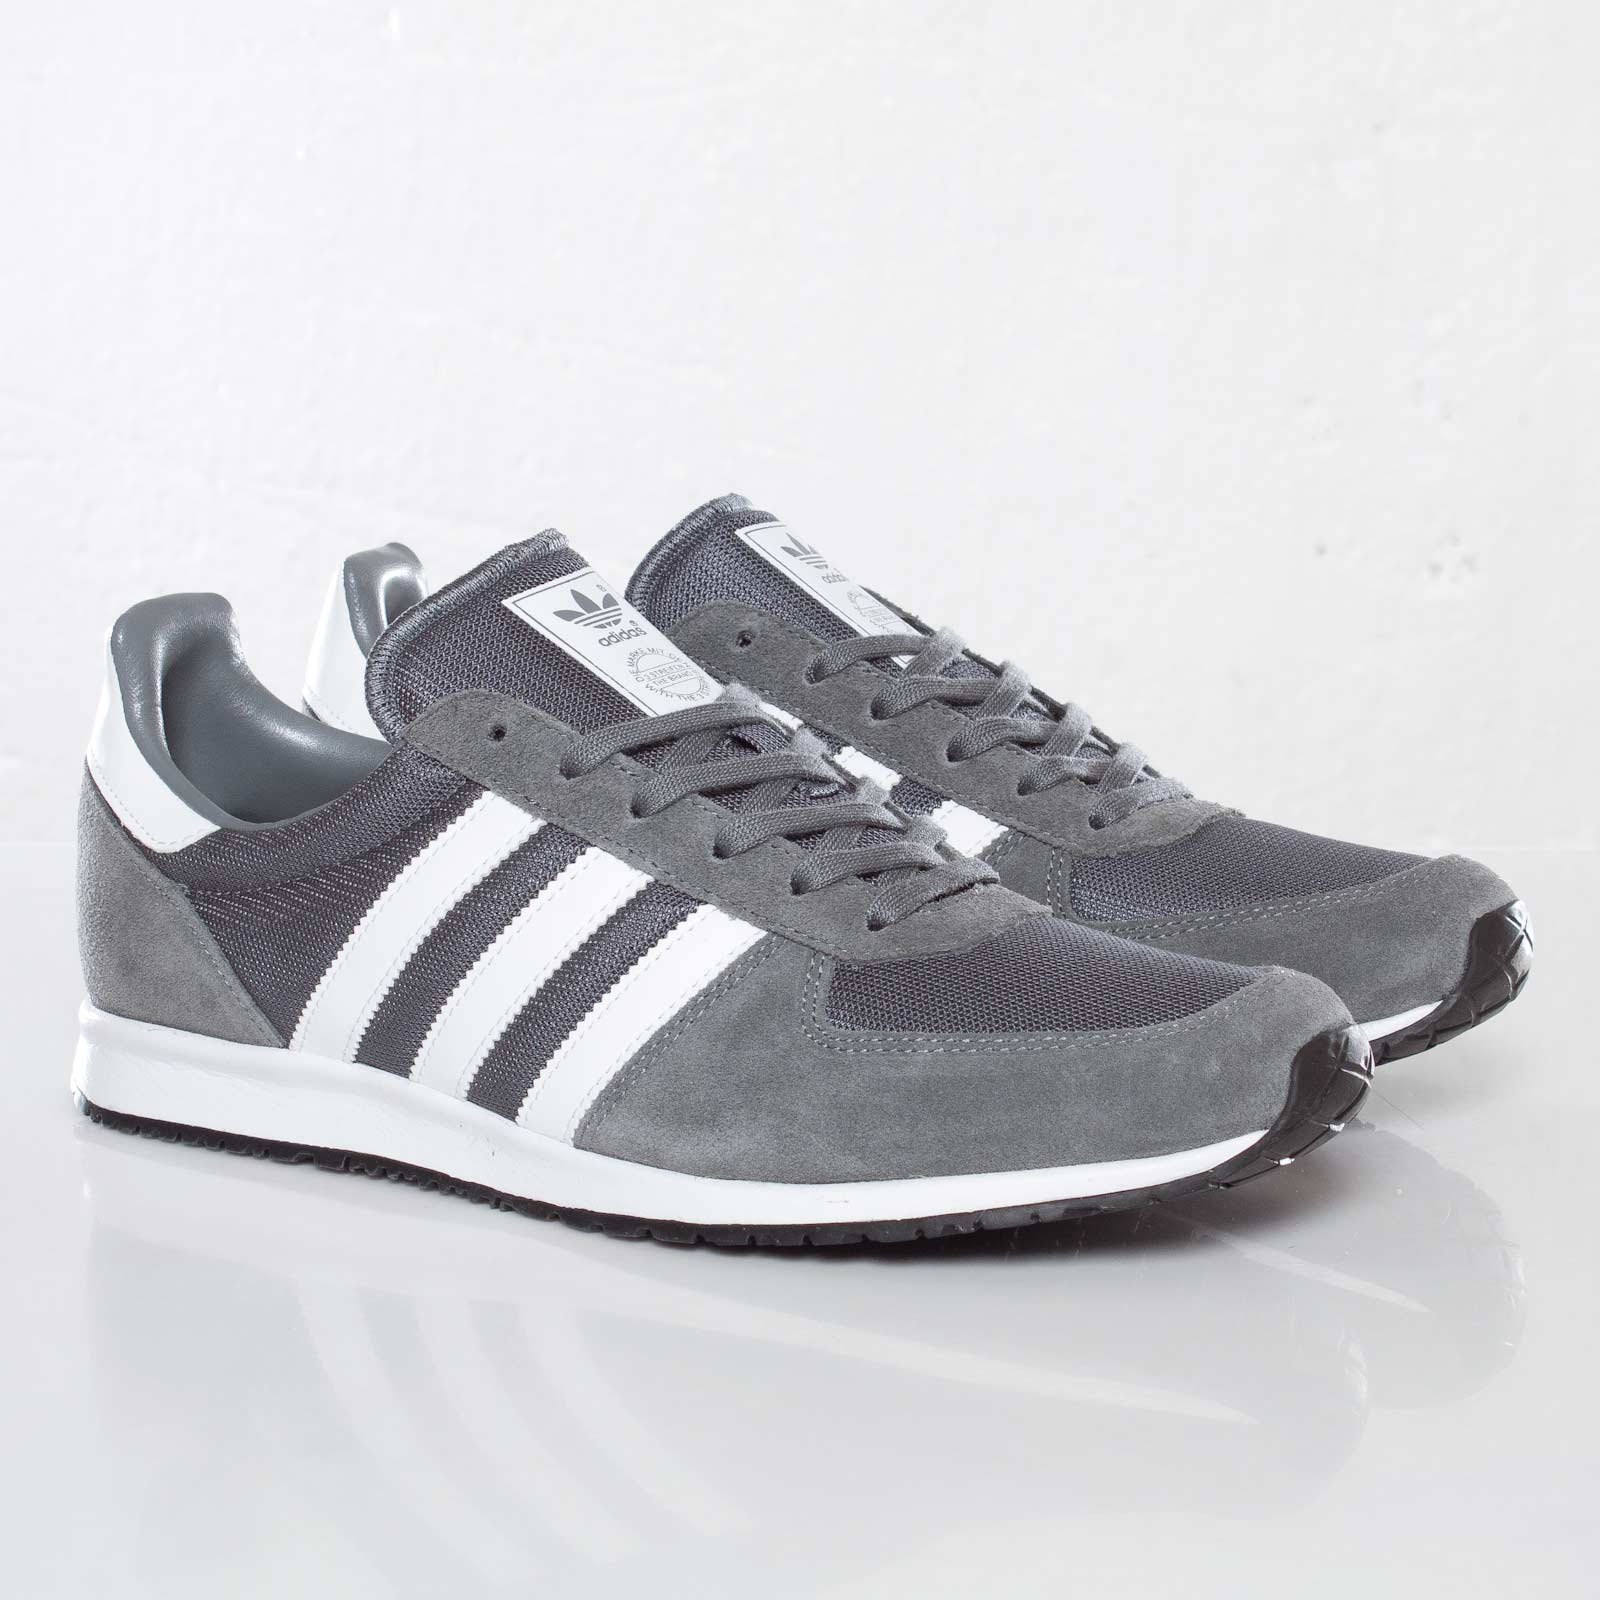 competitive price new arrive special sales adidas Adistar Racer - G95893 - Sneakersnstuff | sneakers ...